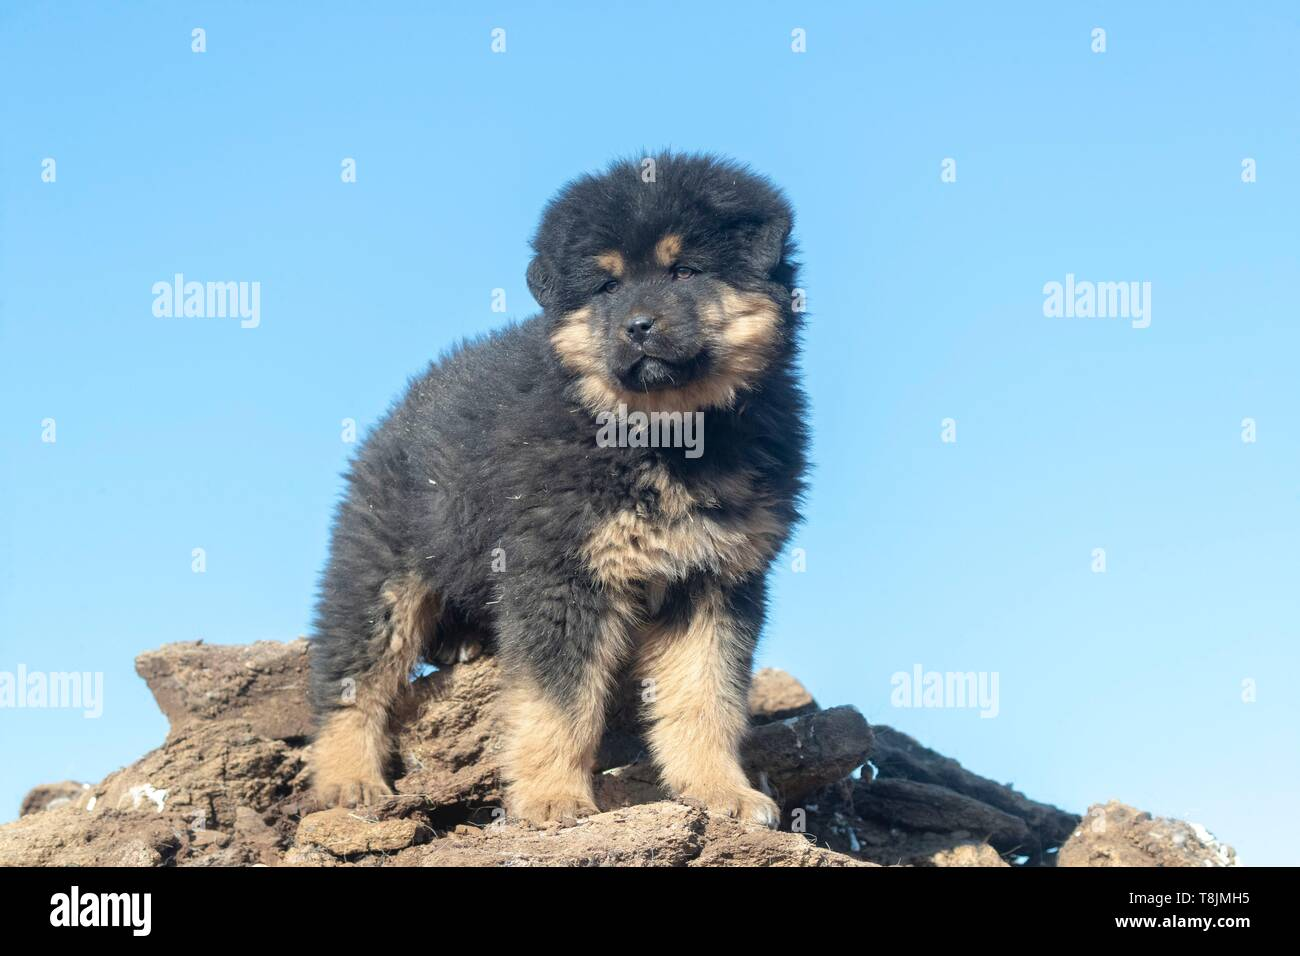 Mongolia, East Mongolia, Steppe area, Tibetan Mastiff is a large Tibetan dog breed (Canis lupus familiaris), 5 months old - Stock Image